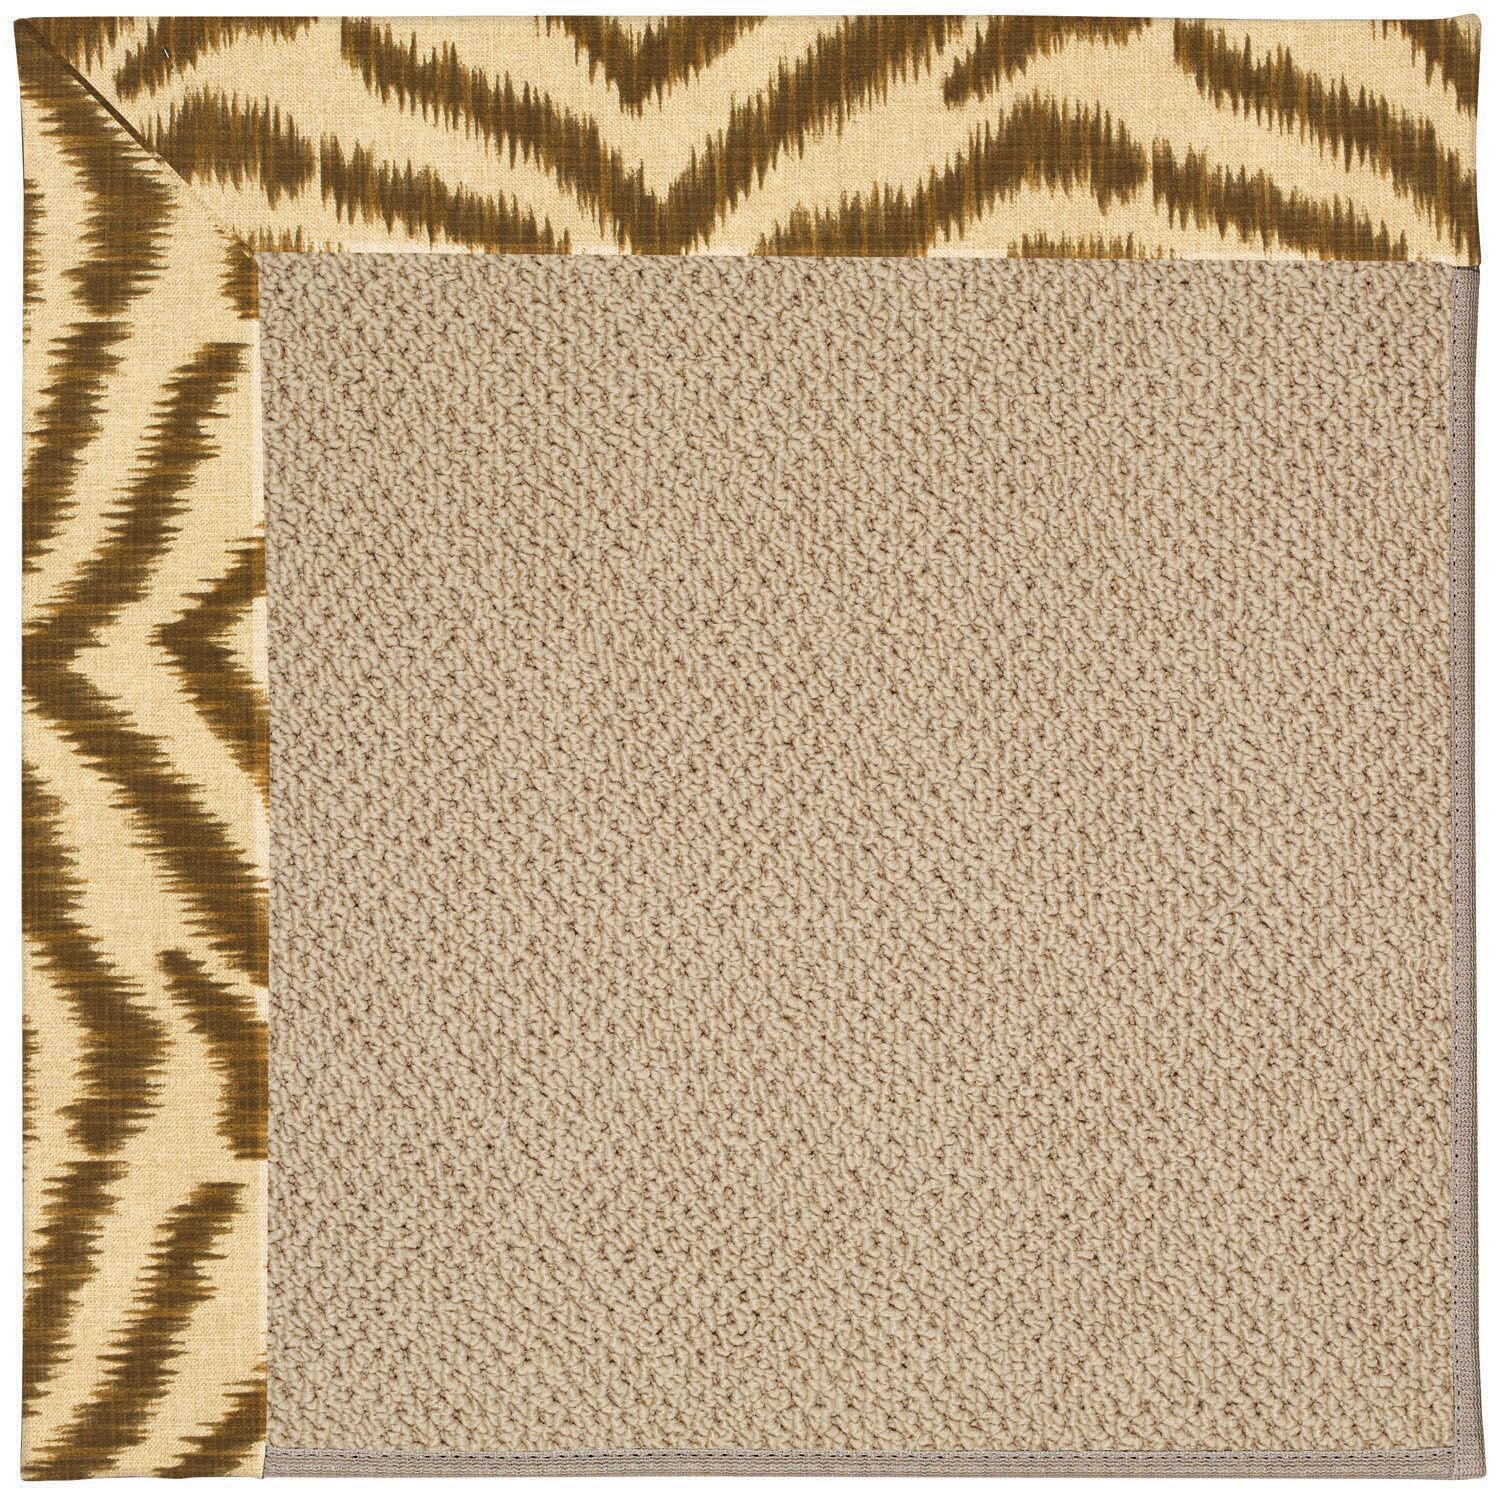 Lisle Machine Tufted Tawny and Beige Indoor/Outdoor Area Rug Rug Size: Rectangle 10' x 14'